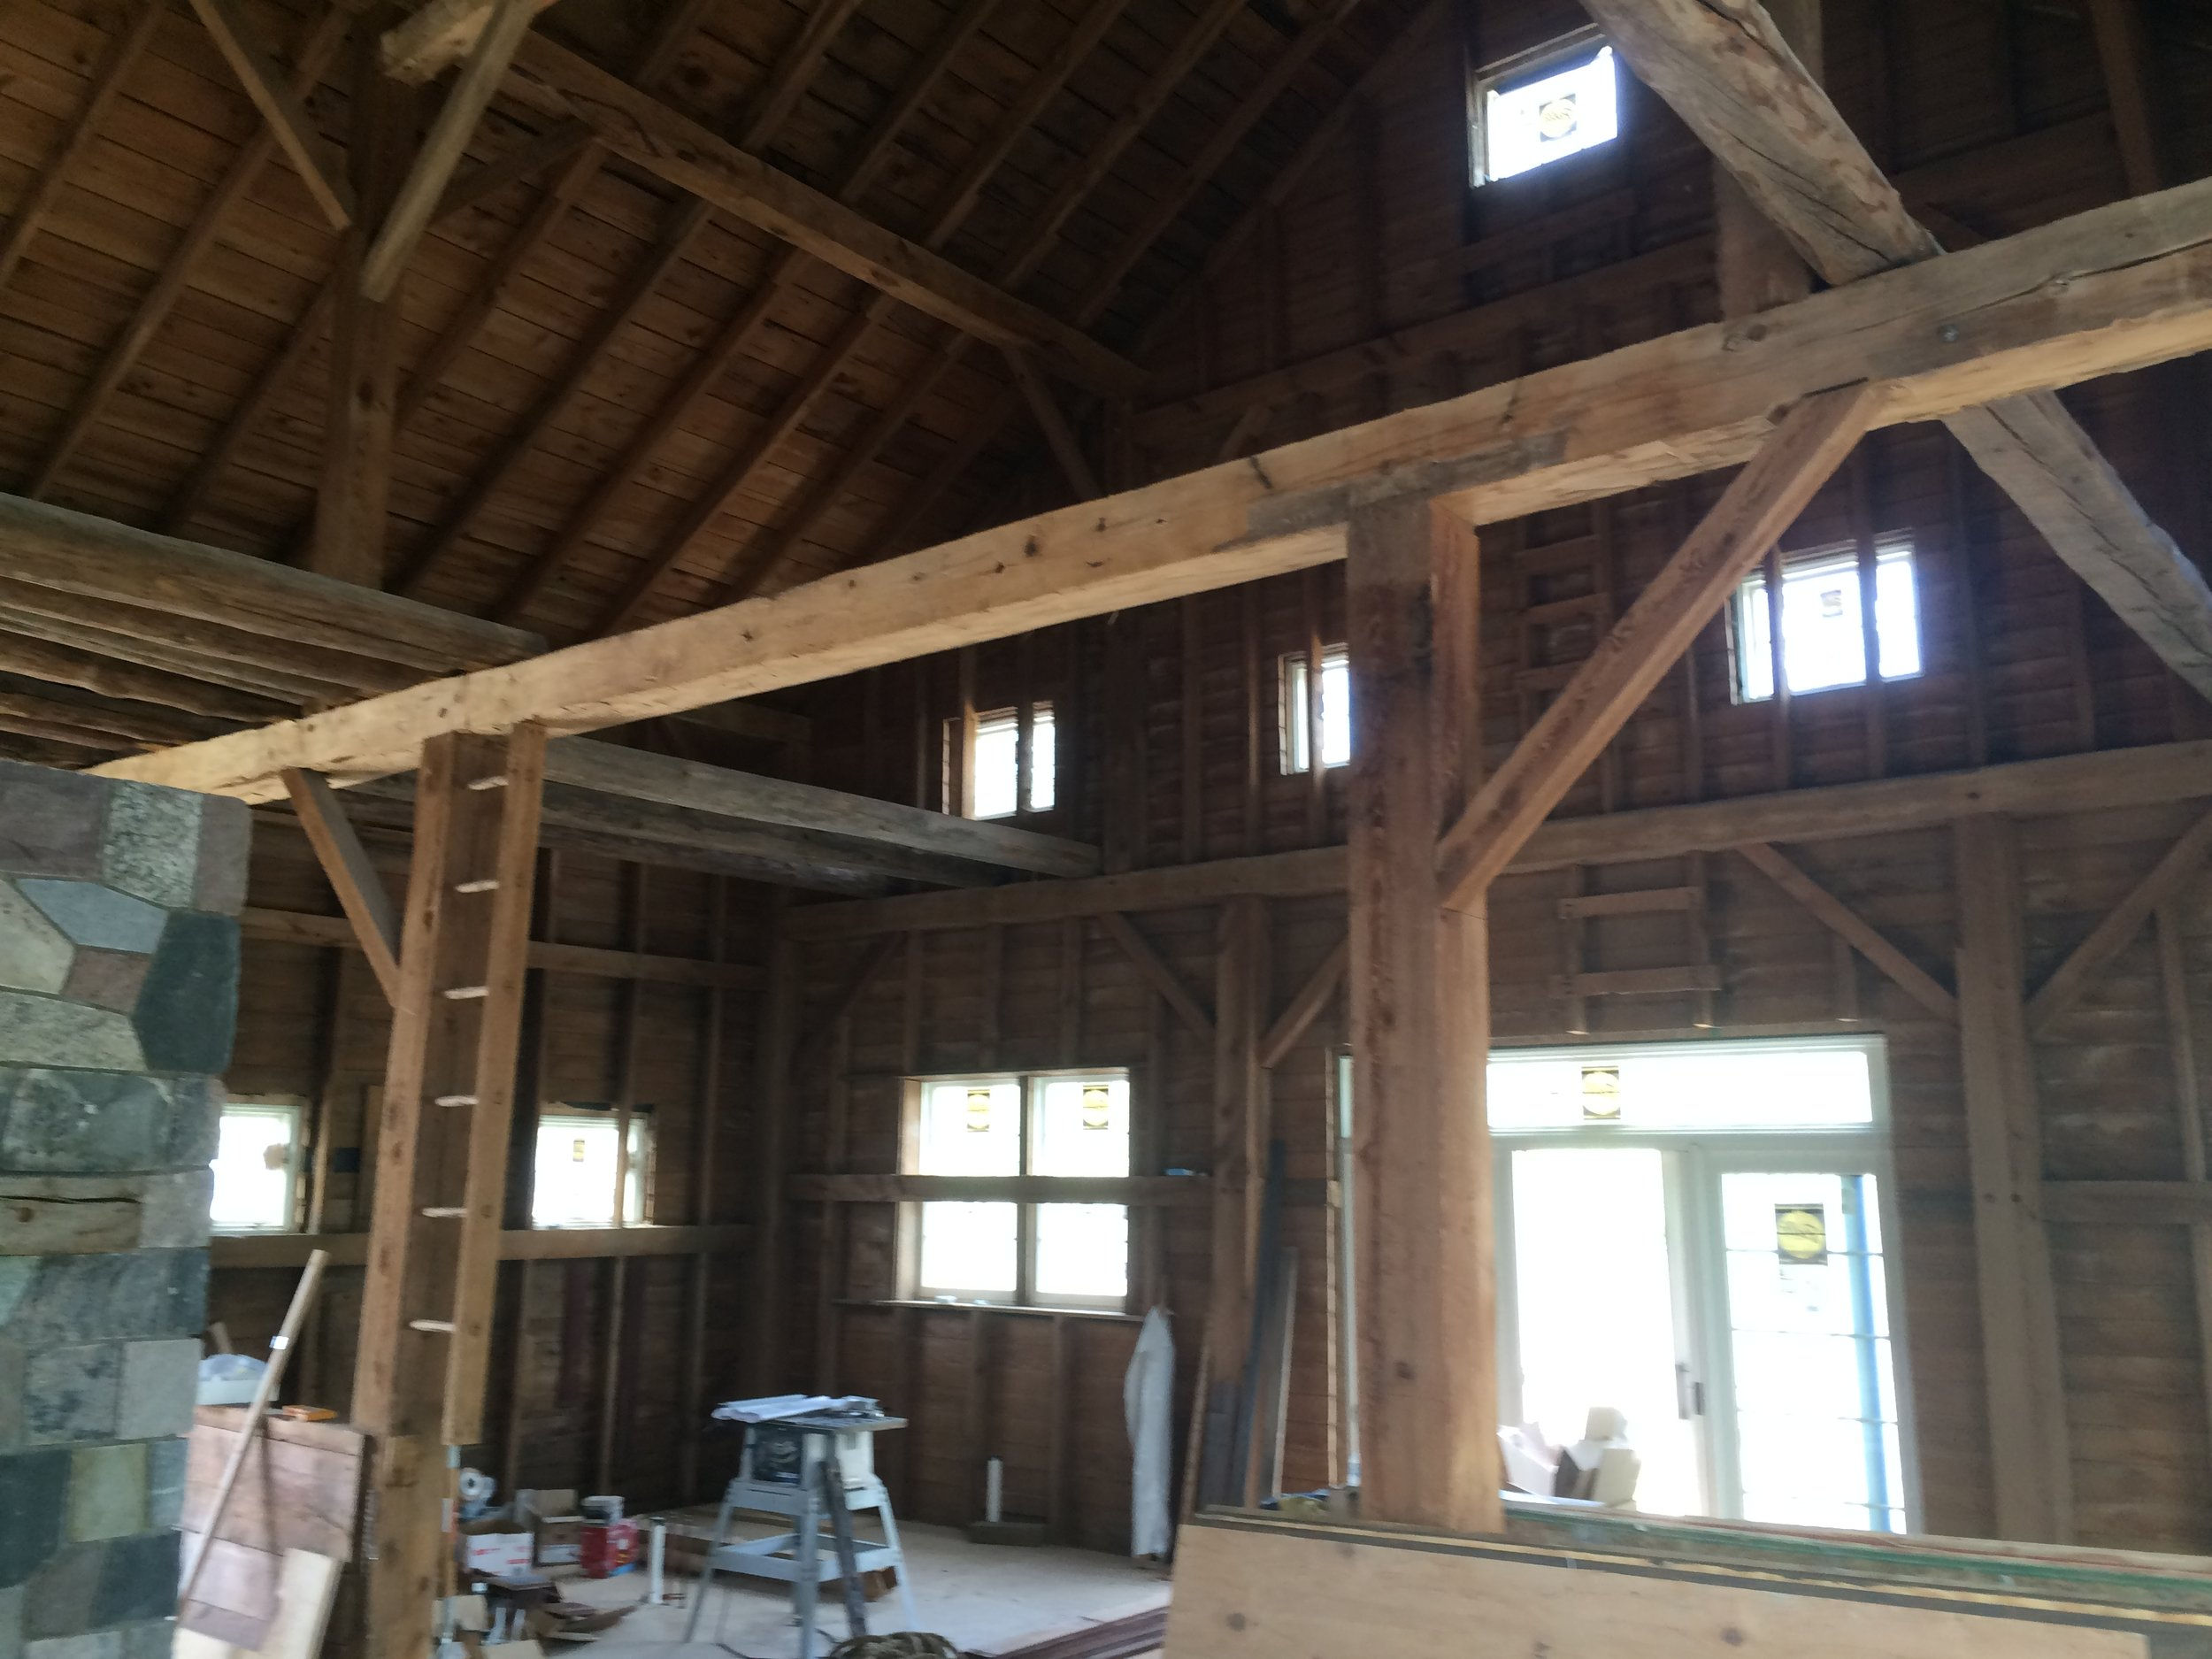 Working on a barn renovation